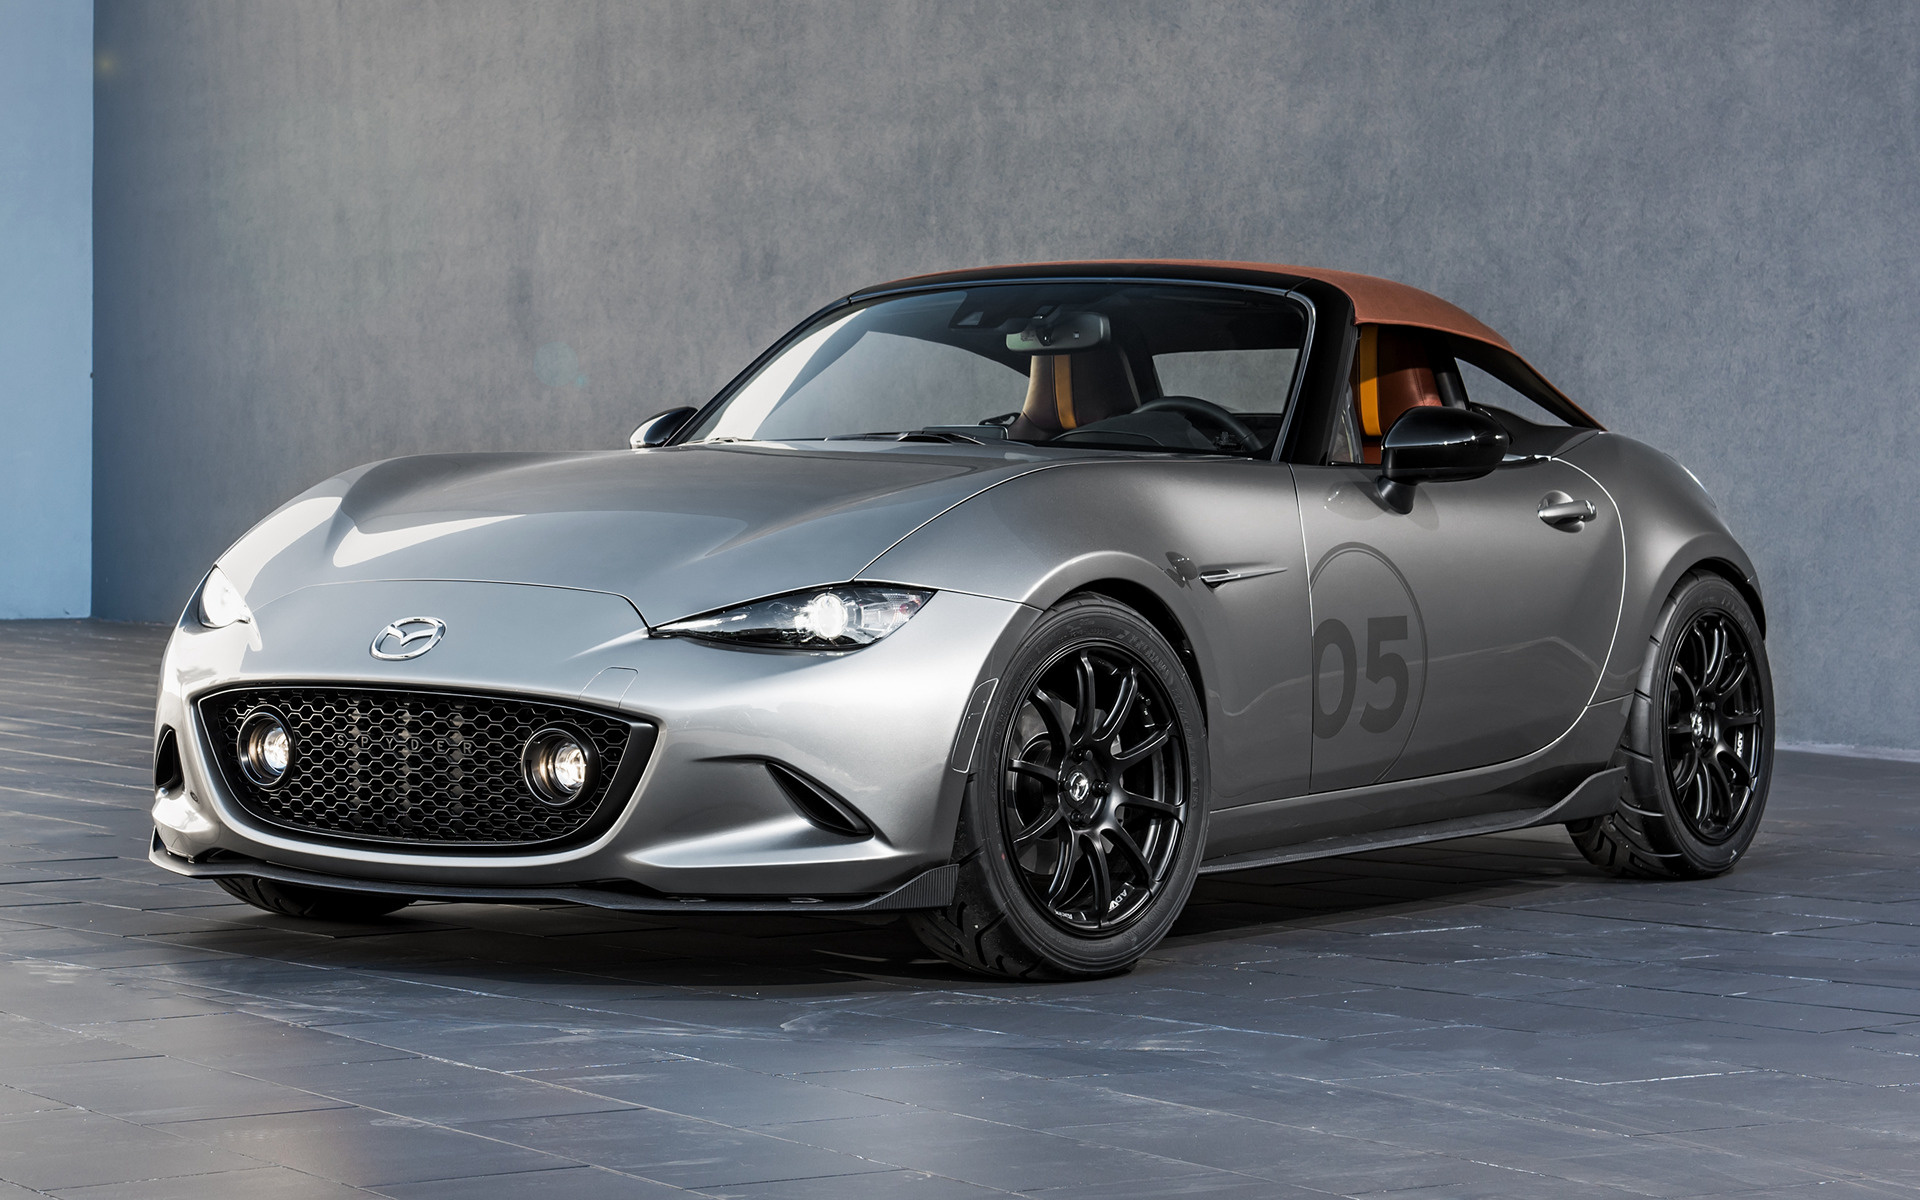 2015 Mazda Mx 5 Spyder Concept Wallpapers And Hd Images